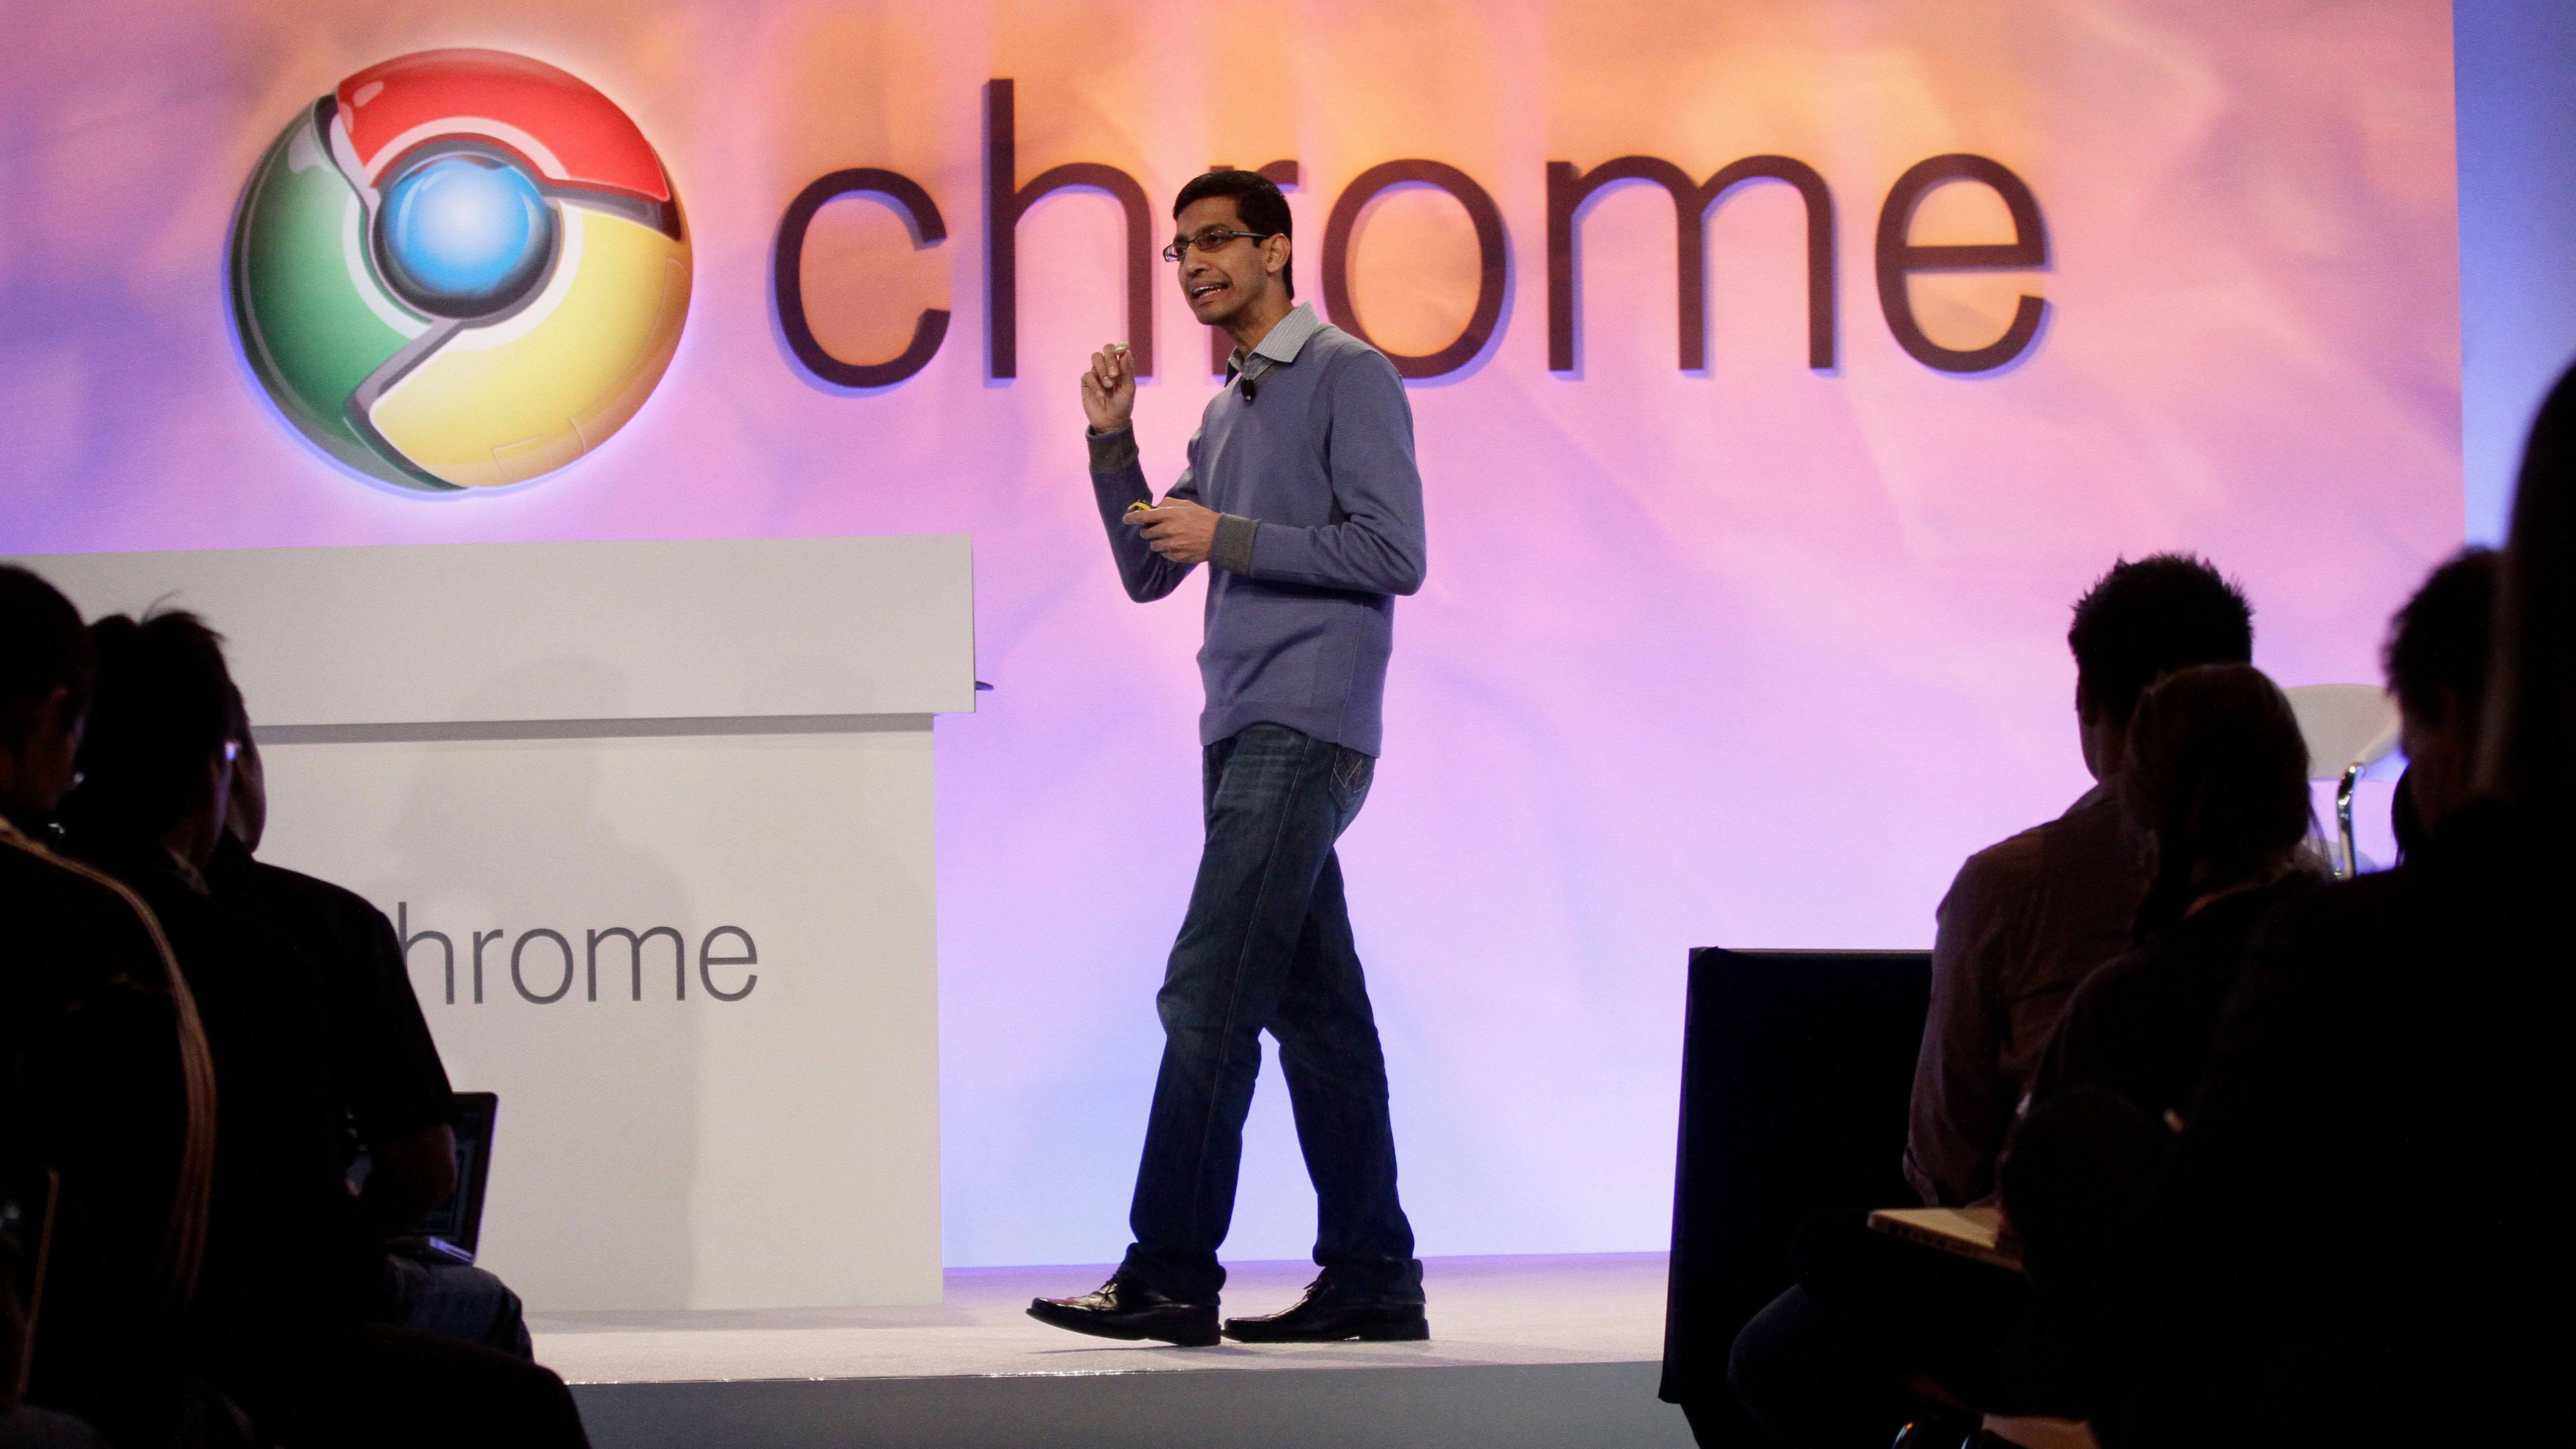 We recommend the best Chrome extensions for Chrome's 10th